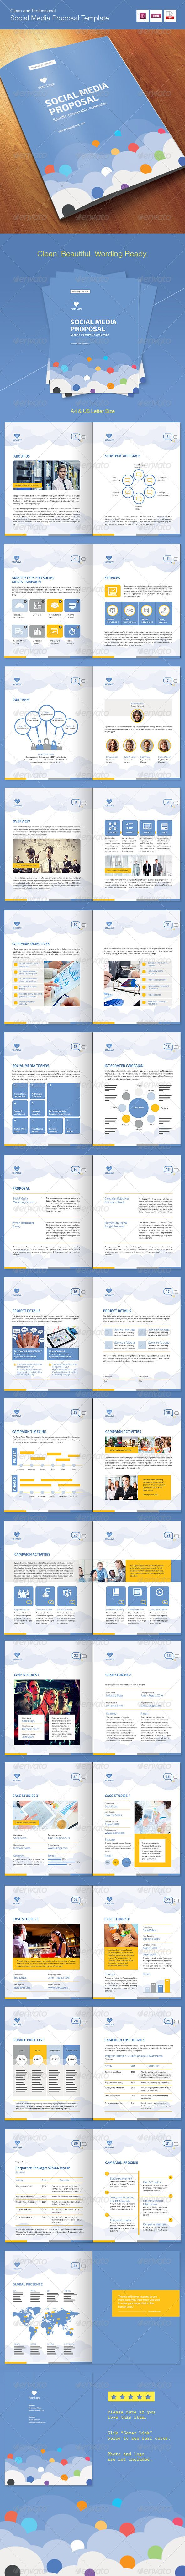 Social Media Proposal Template  Proposal Templates Proposals And